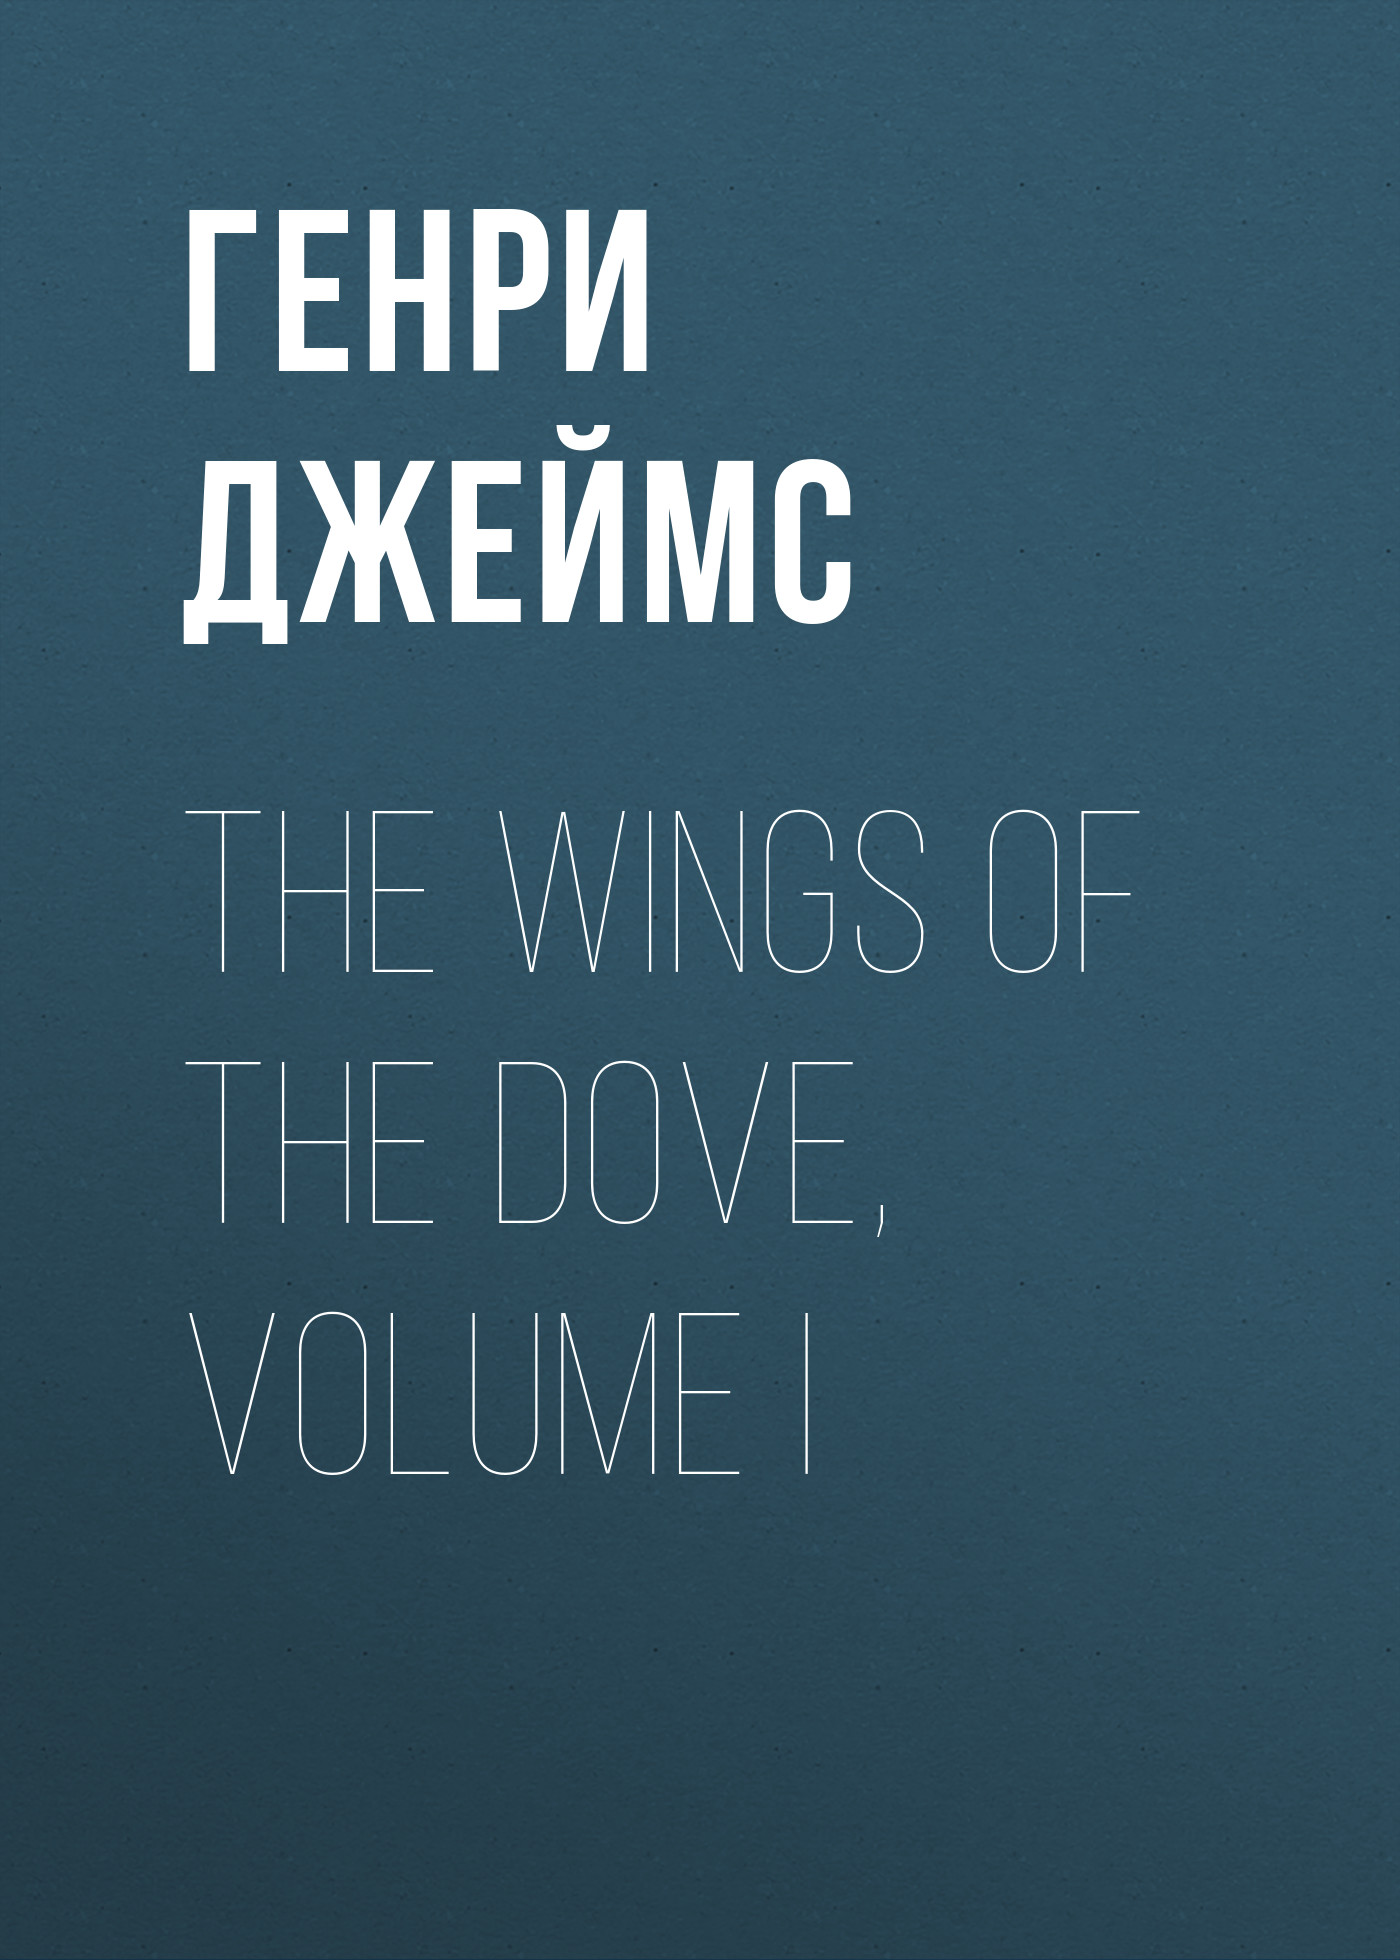 Генри Джеймс The Wings of the Dove, Volume I цена 2017